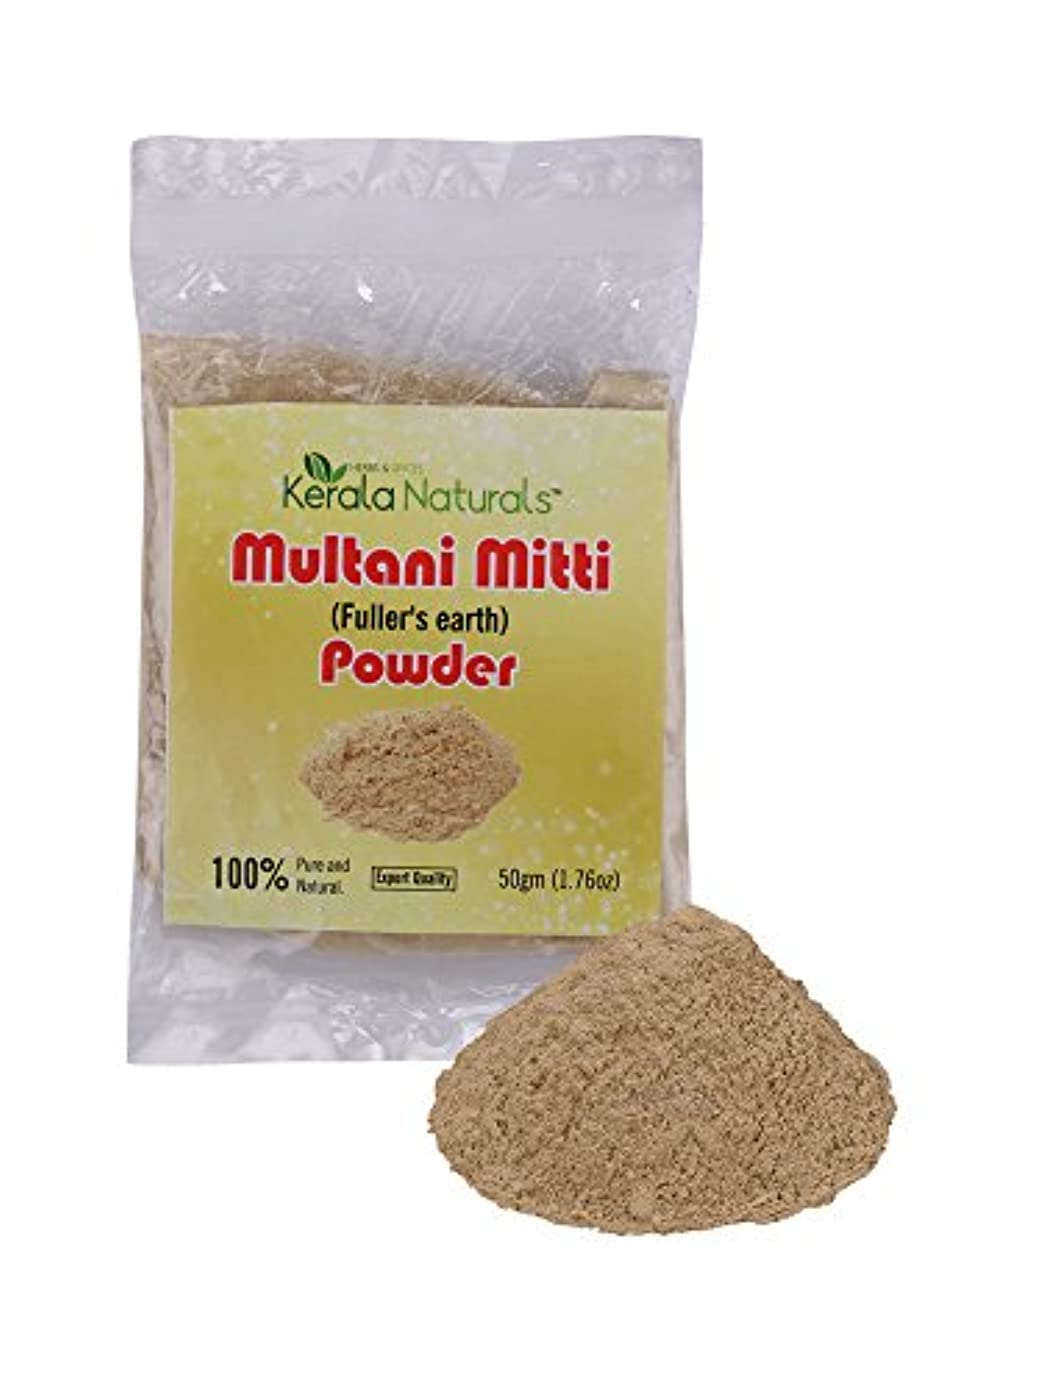 測定可能冷笑する頭痛Multani Mitti Powder 200gm - Anti acne & Blemishes, Glowing Skin - Multani Mittiパウダー200gm-にきび&傷、輝く肌